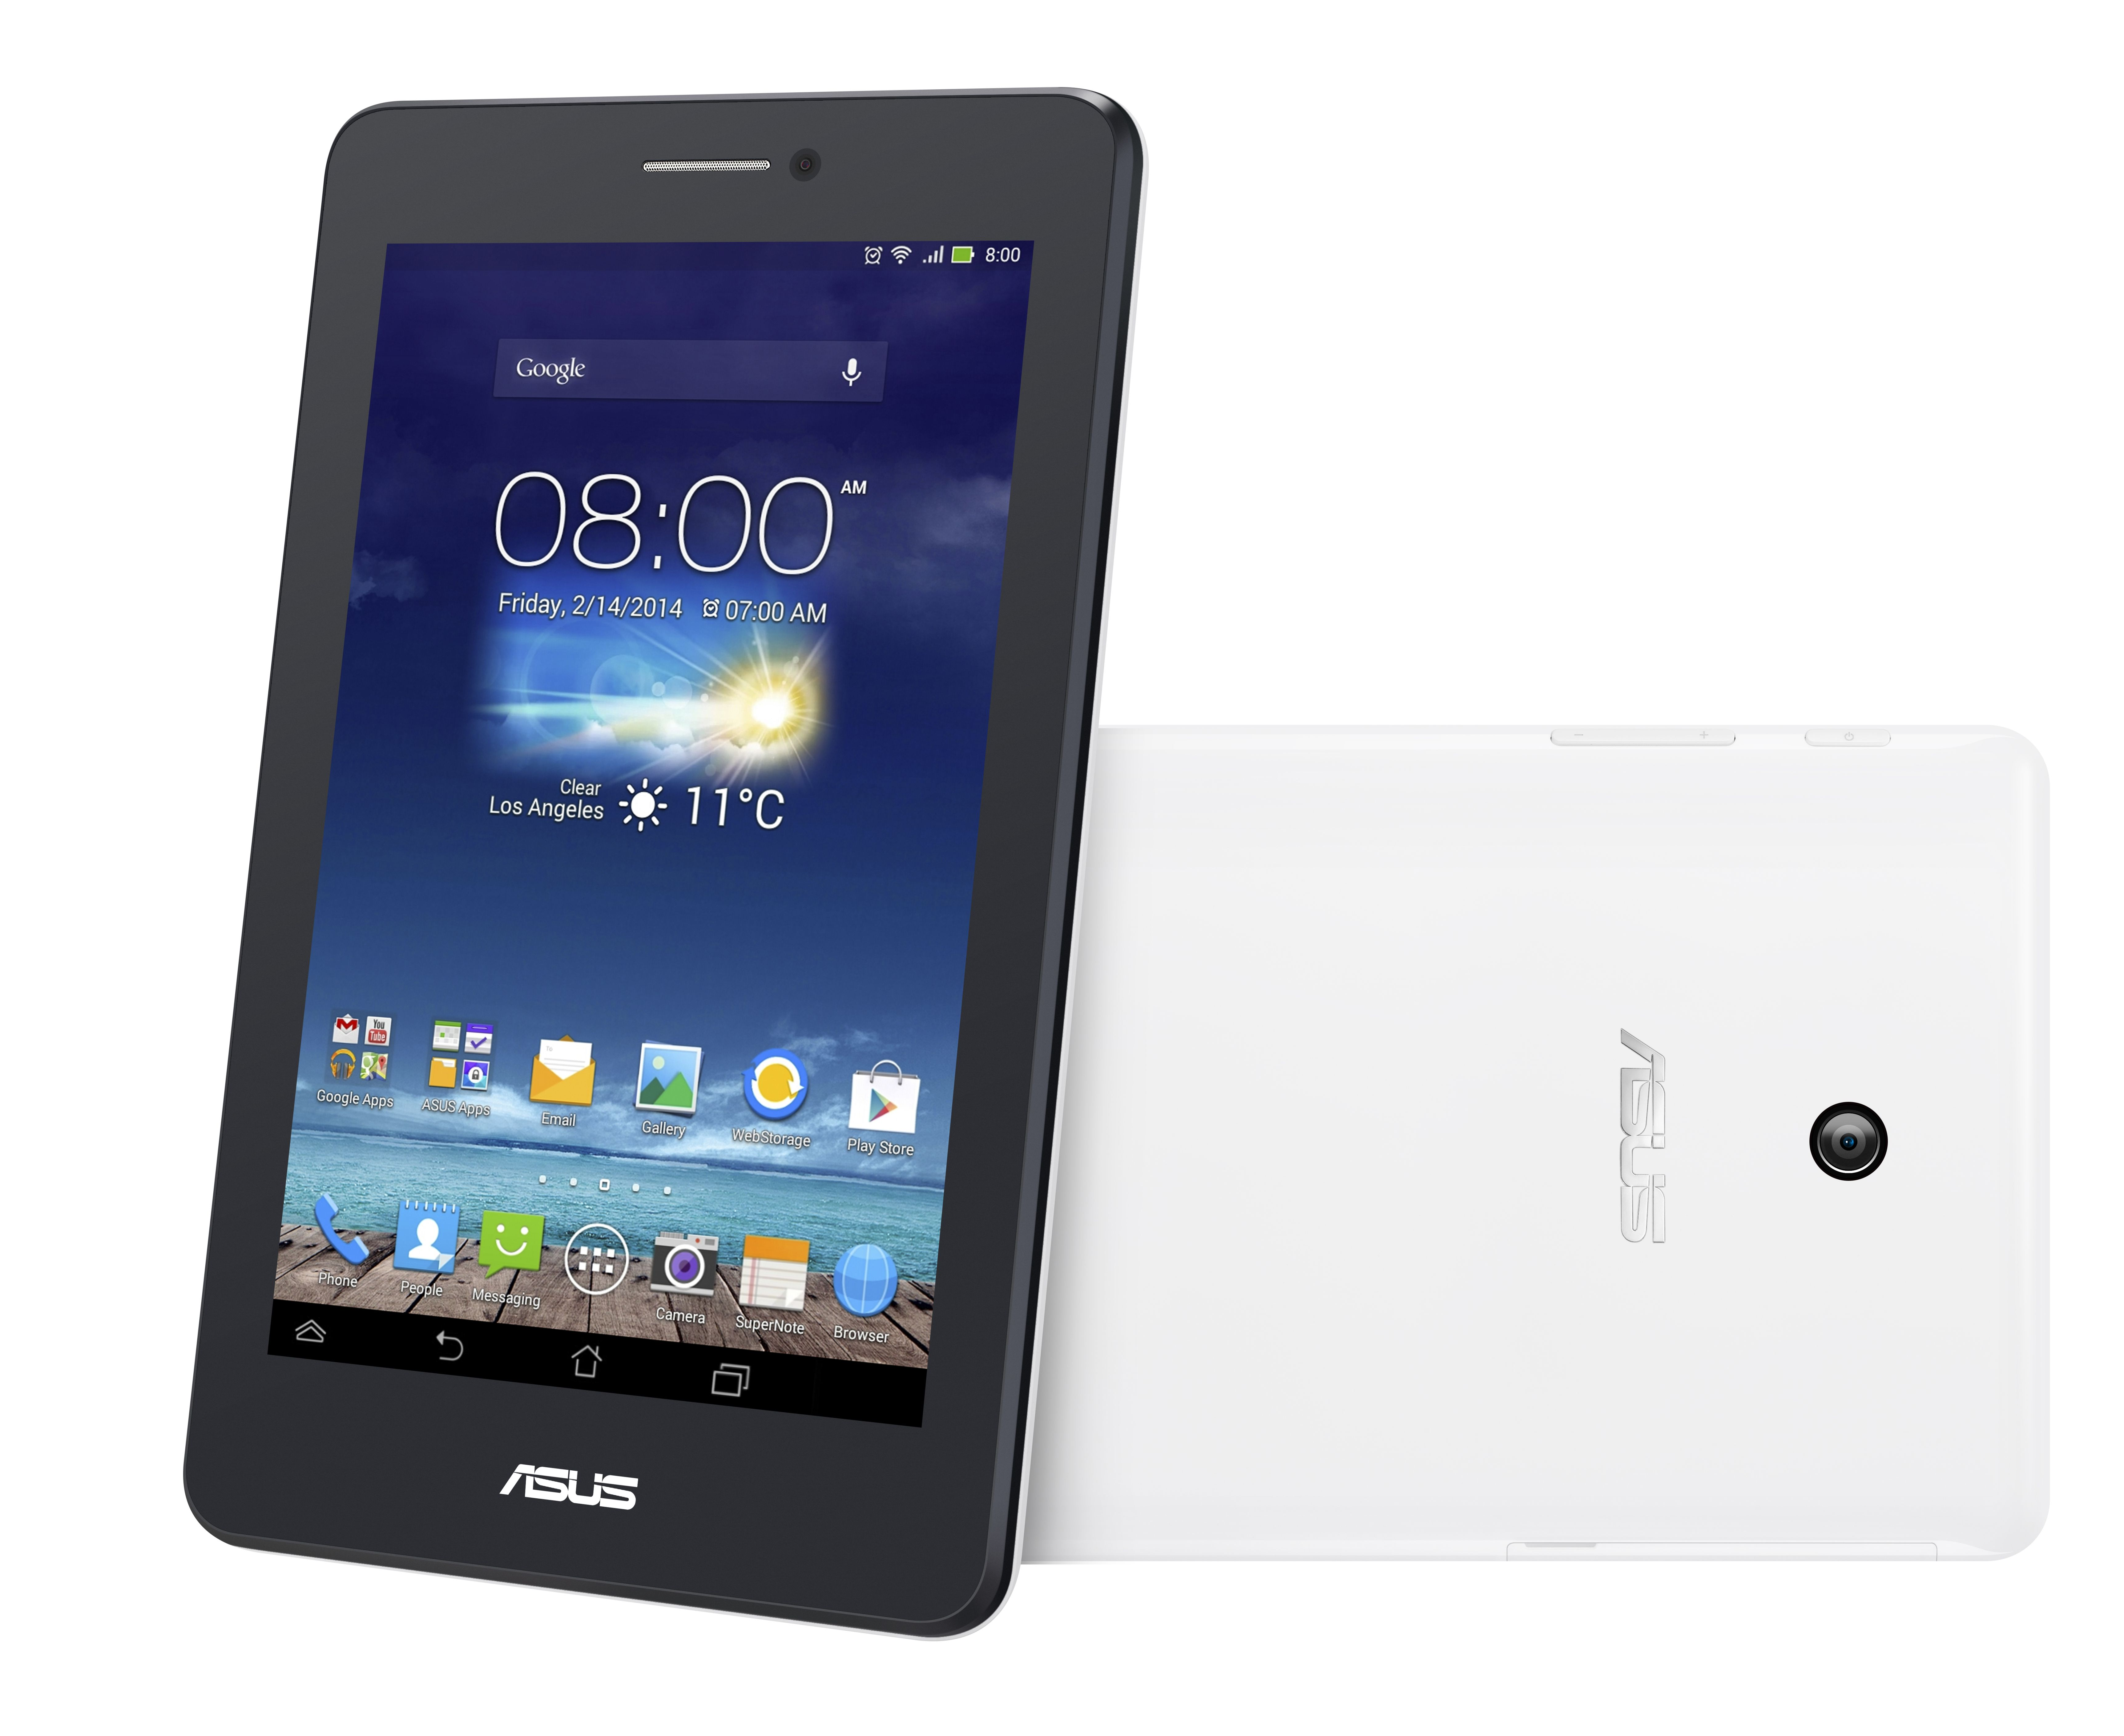 Asus fonepad 7 dual sim calling tab price video review for O tablet price list 2014